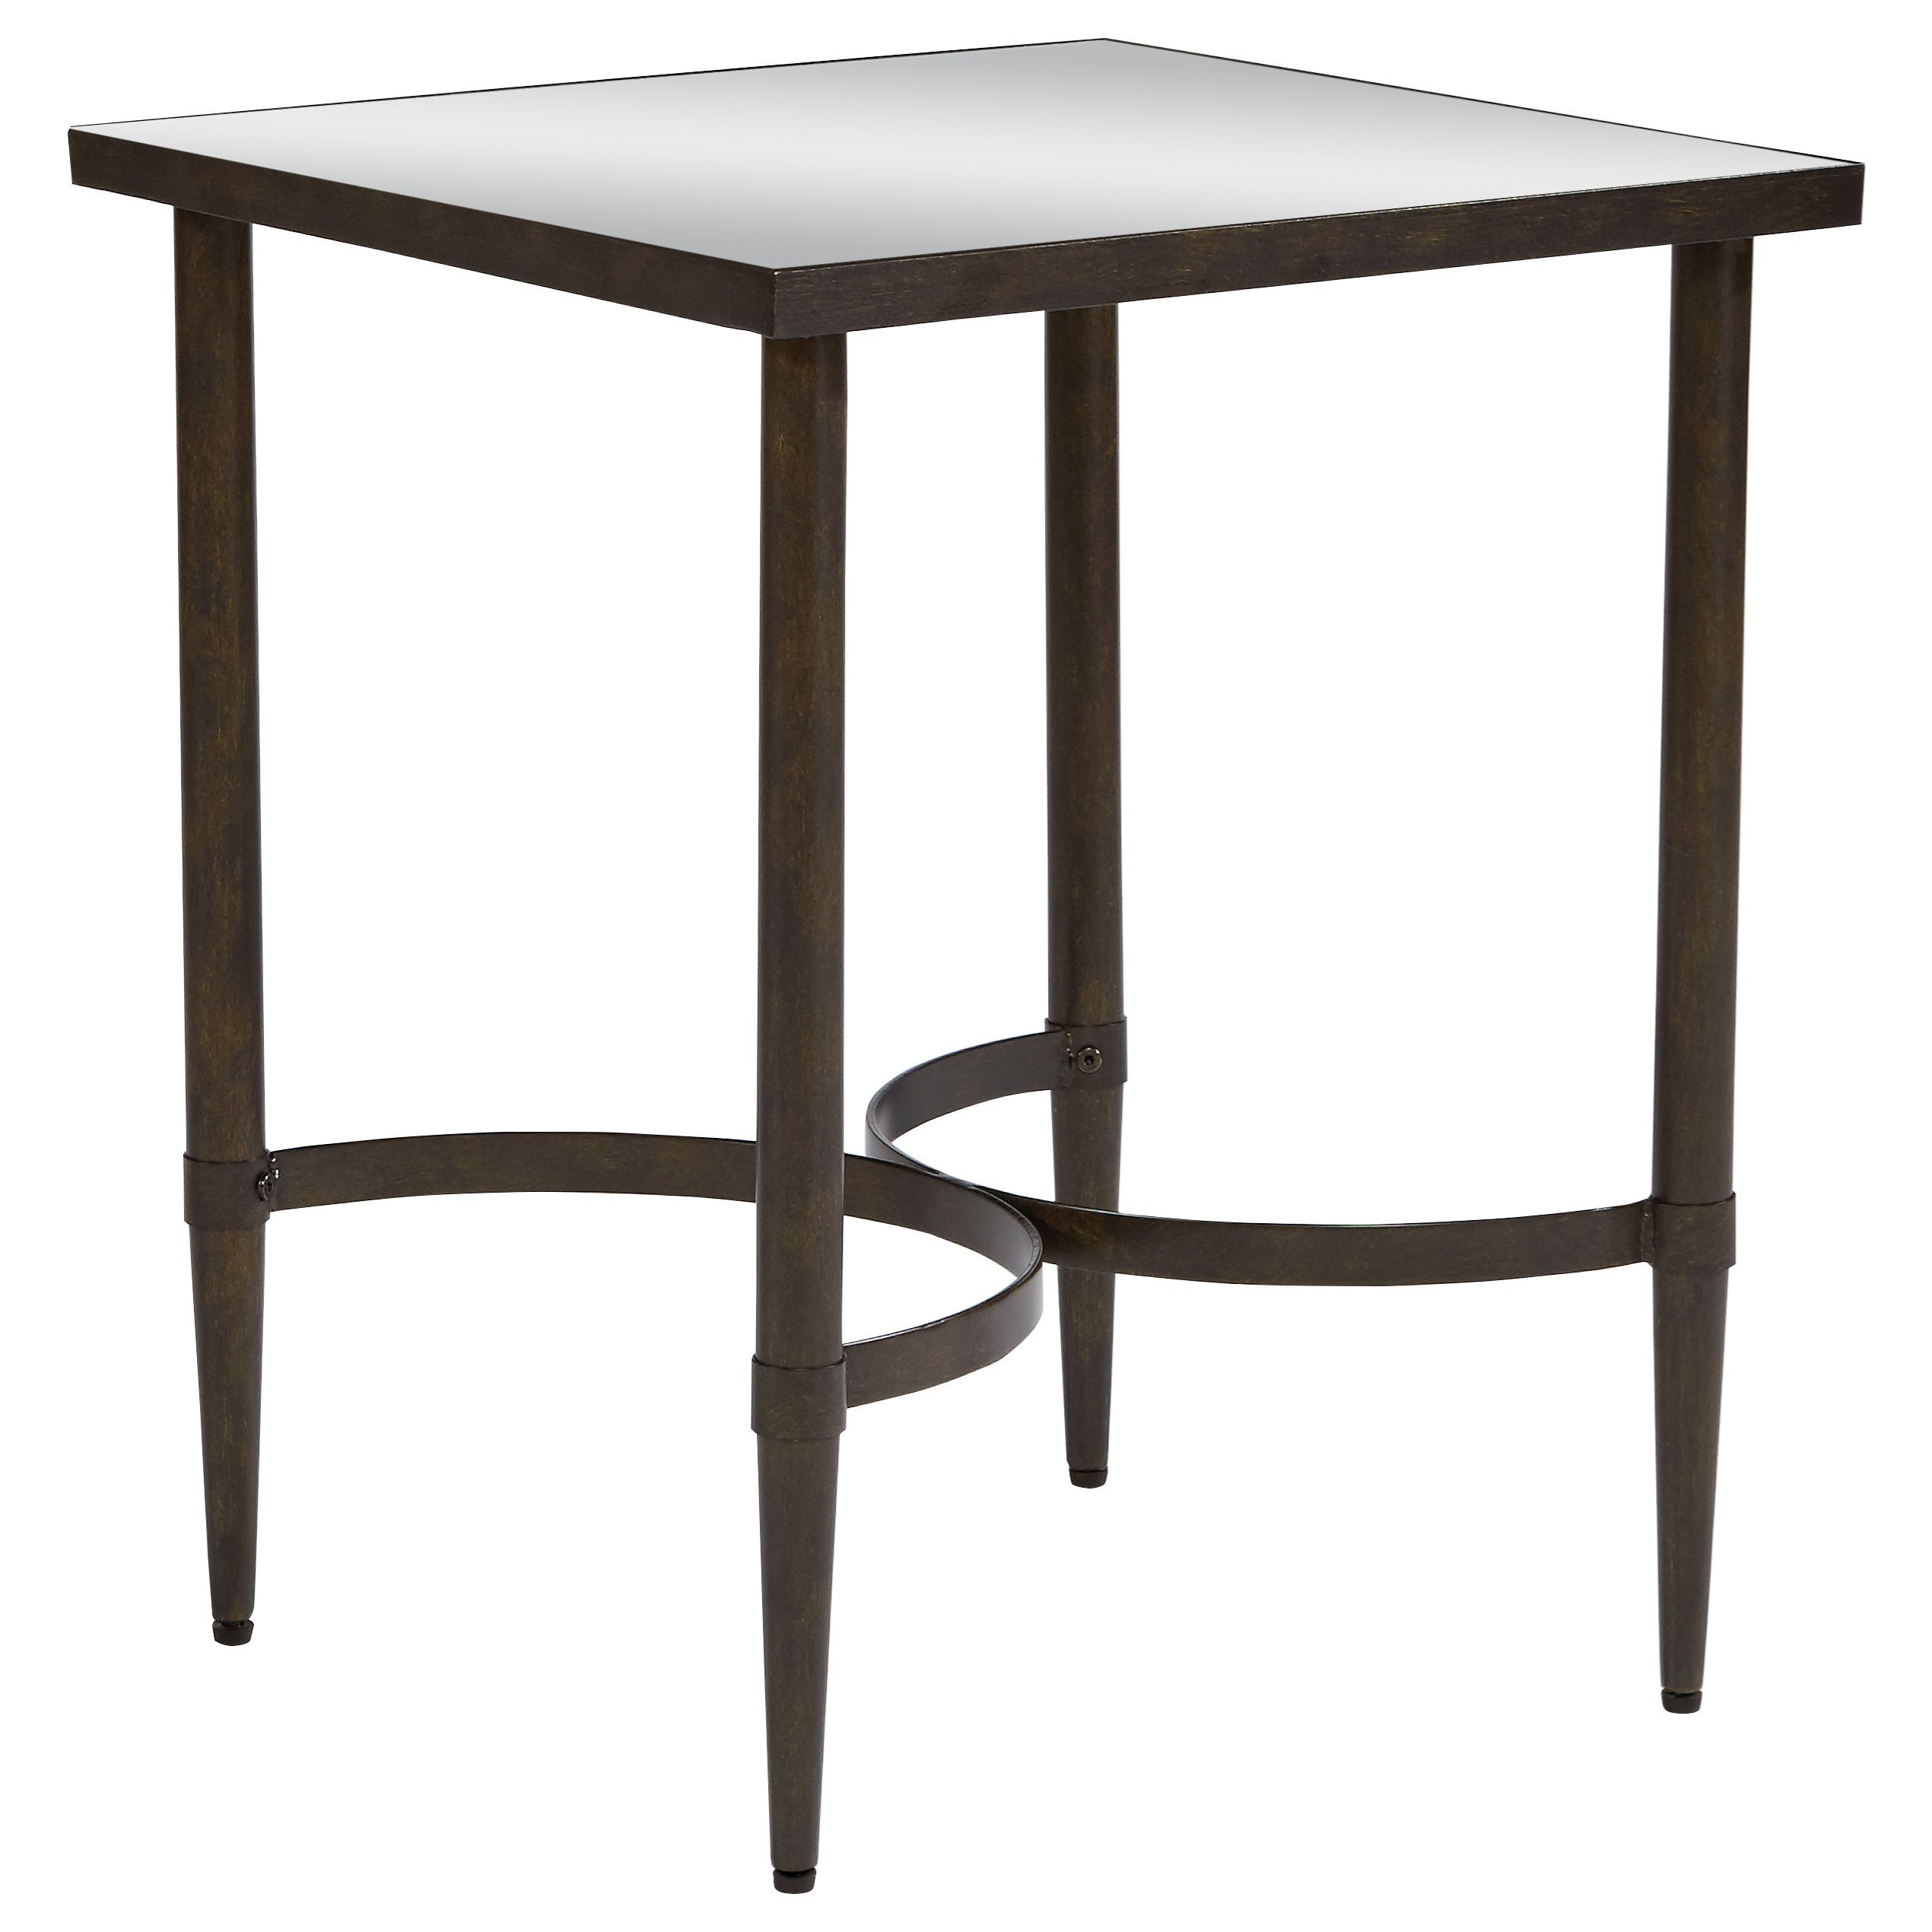 Magnolia Home By Joanna Gaines Accent Elements End Table With Mirrored Top    Great American Home Store   End Tables